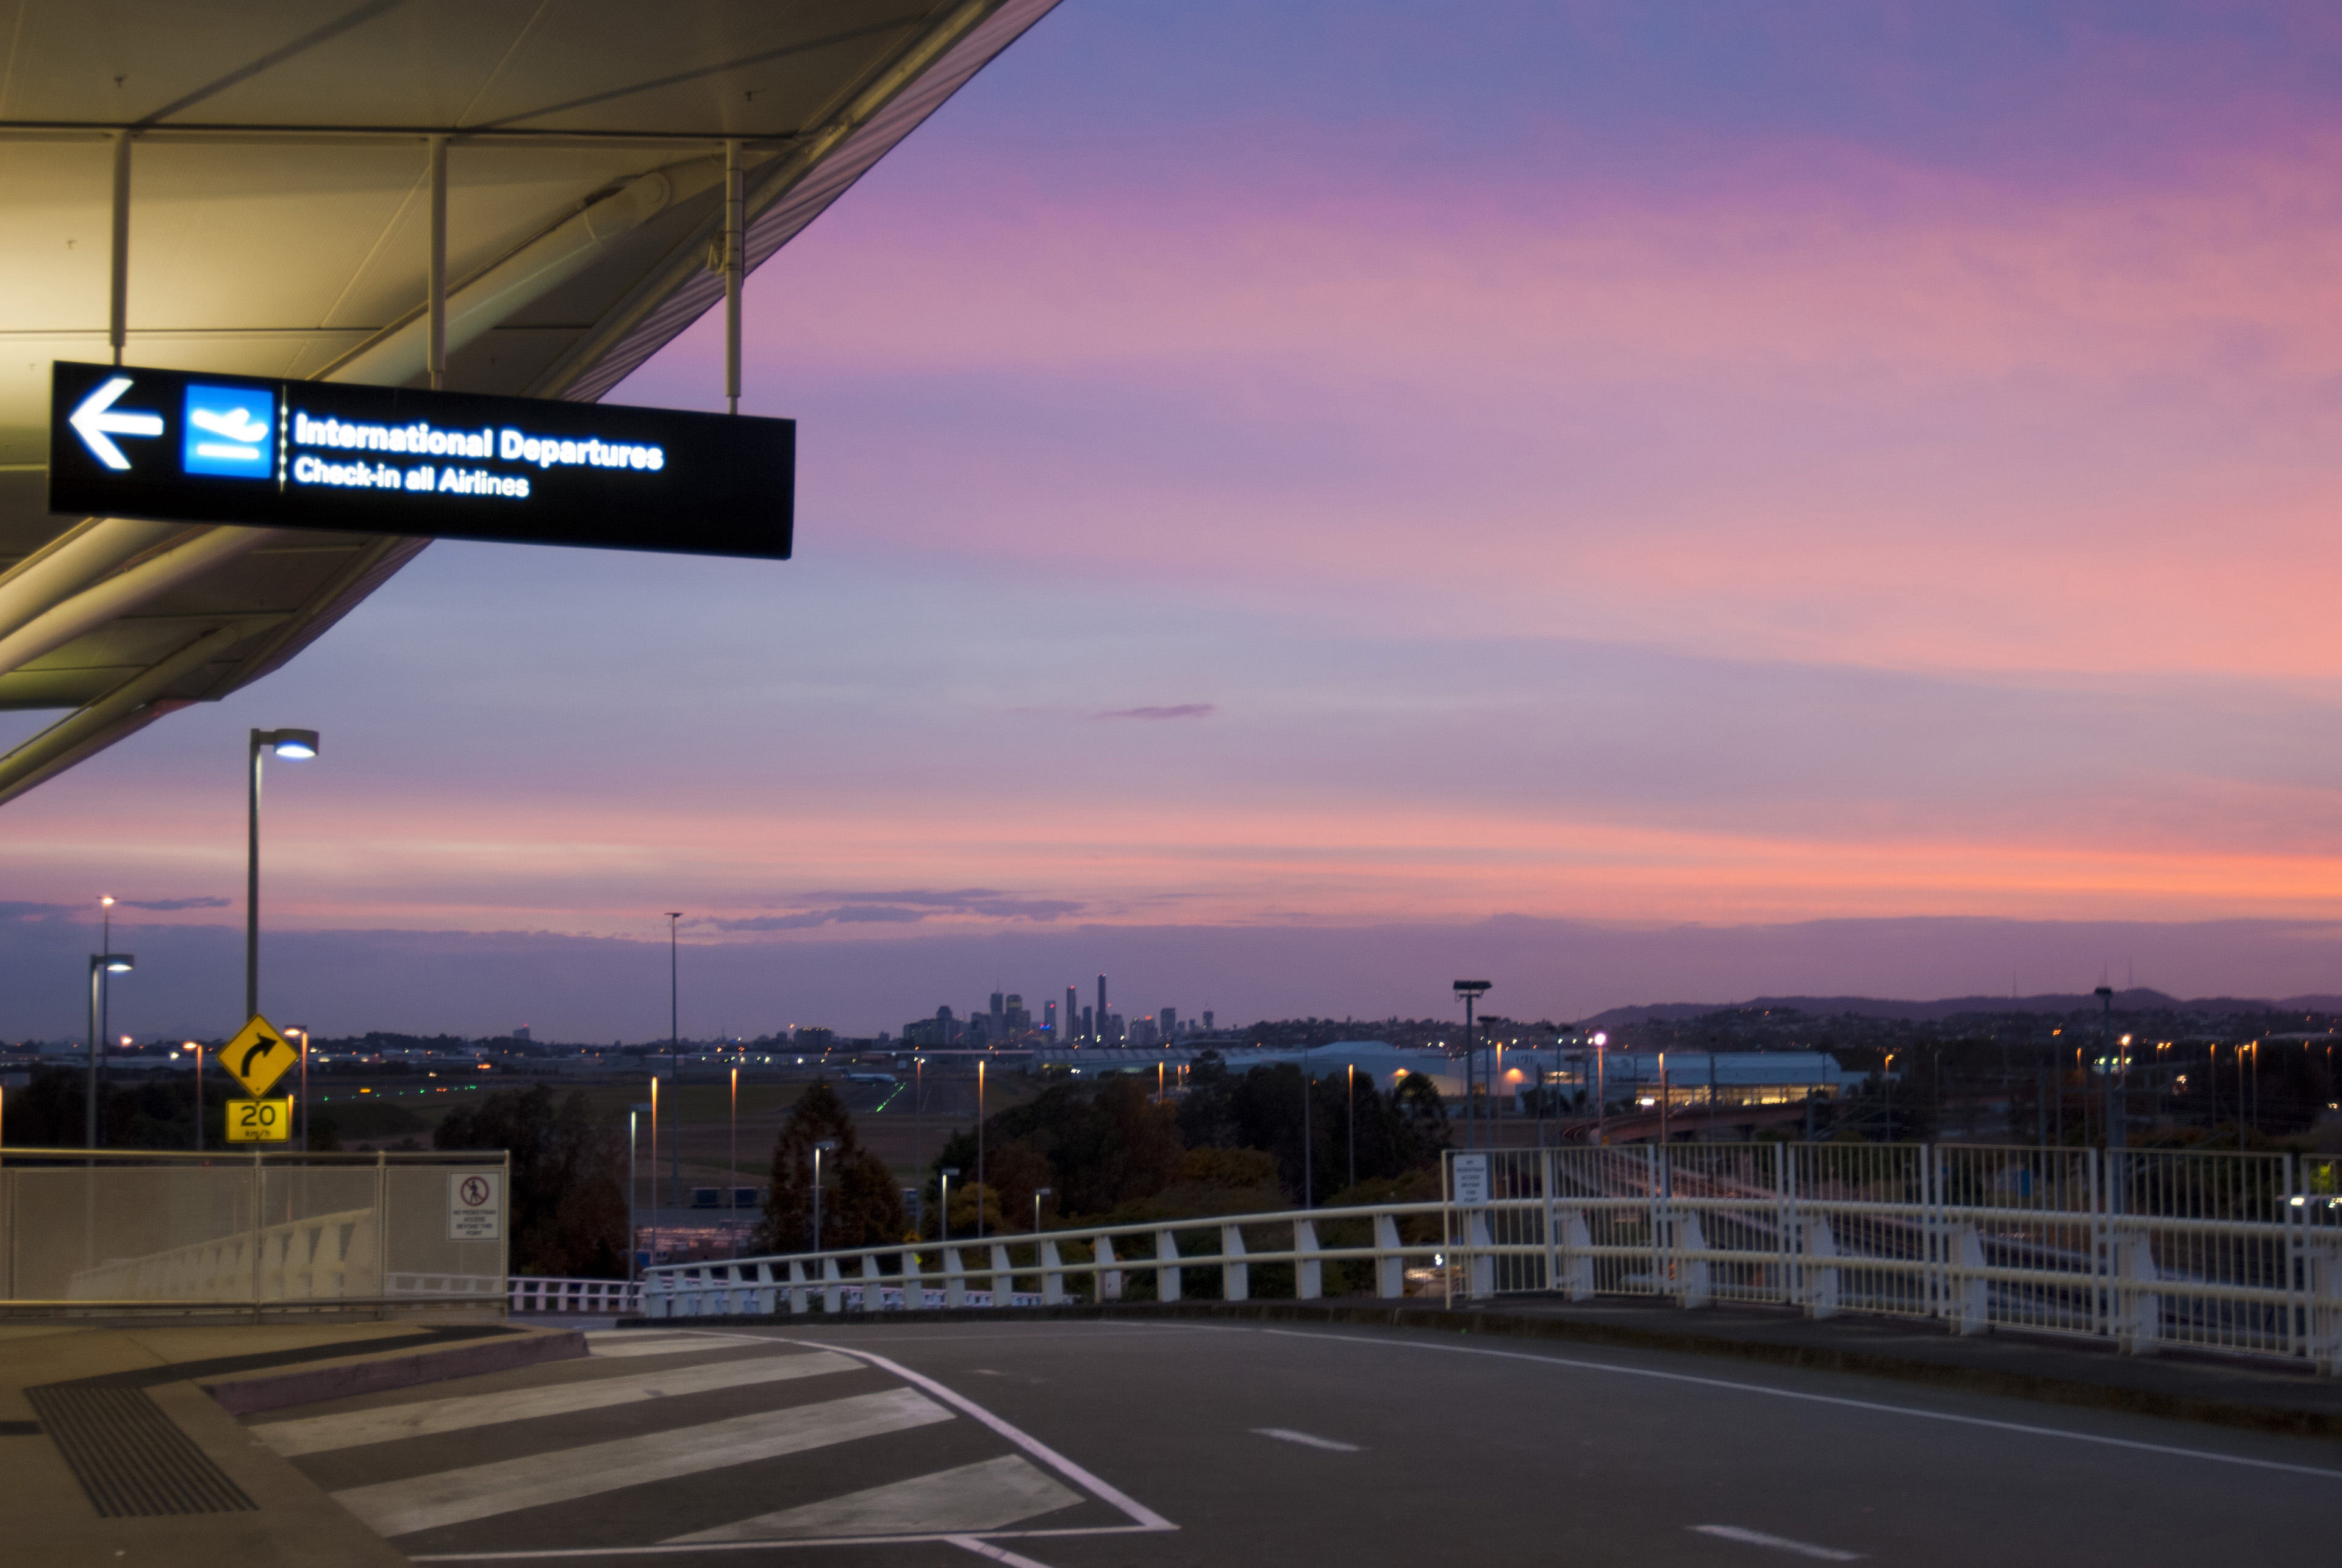 Drop off point outside an airport terminal with a view across the city at sunset with a colorful purple lilac sky